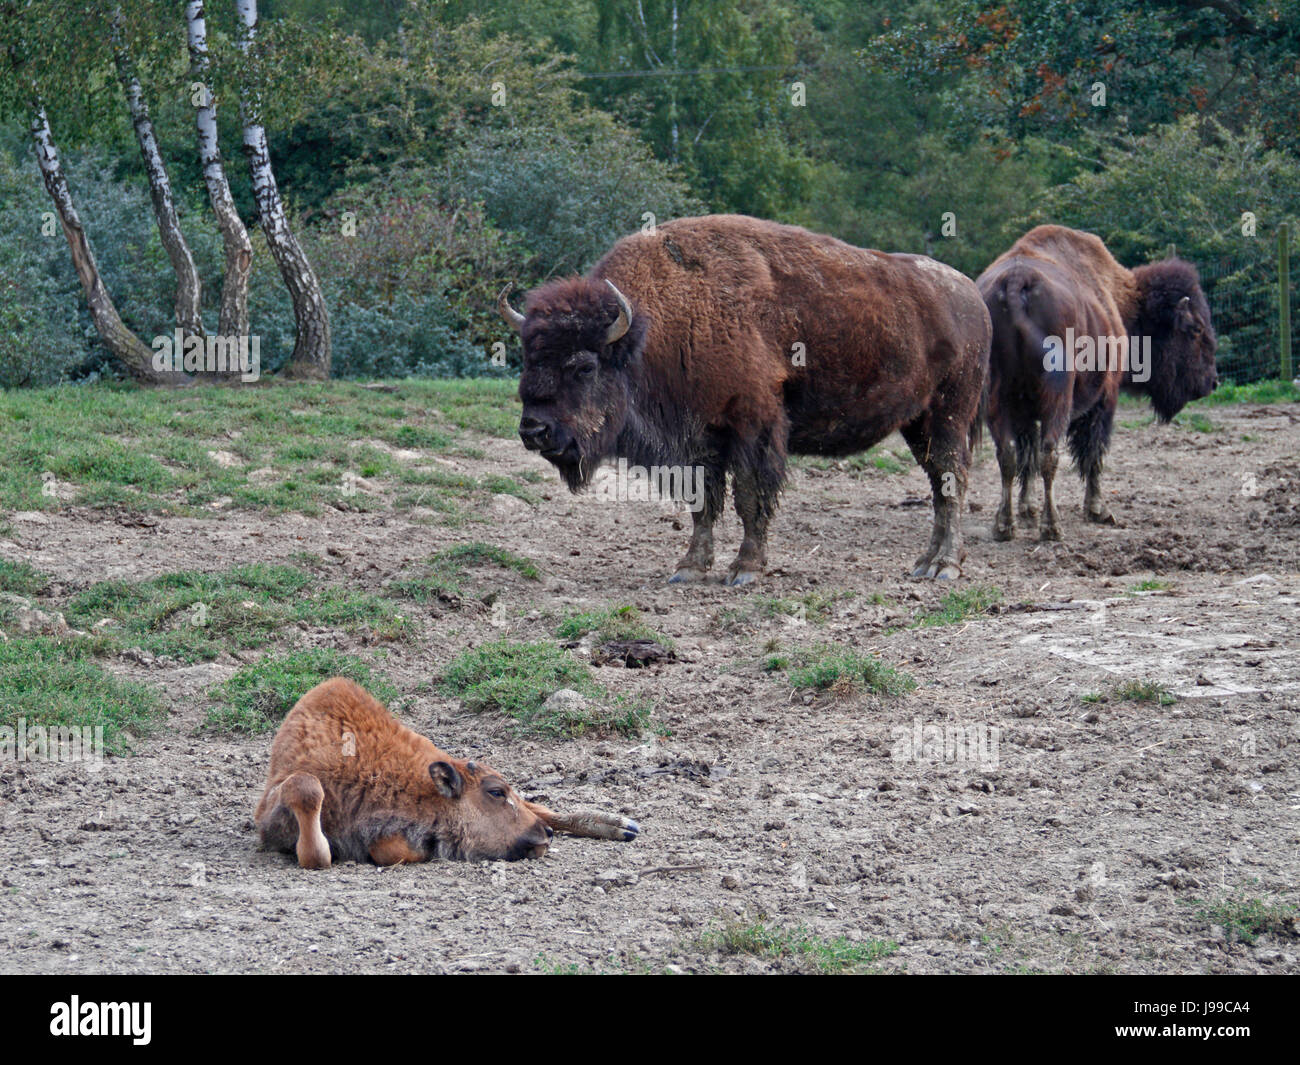 mammals, cattle, bison, animal, mammal, skin, location shot, bovine, captivity, - Stock Image